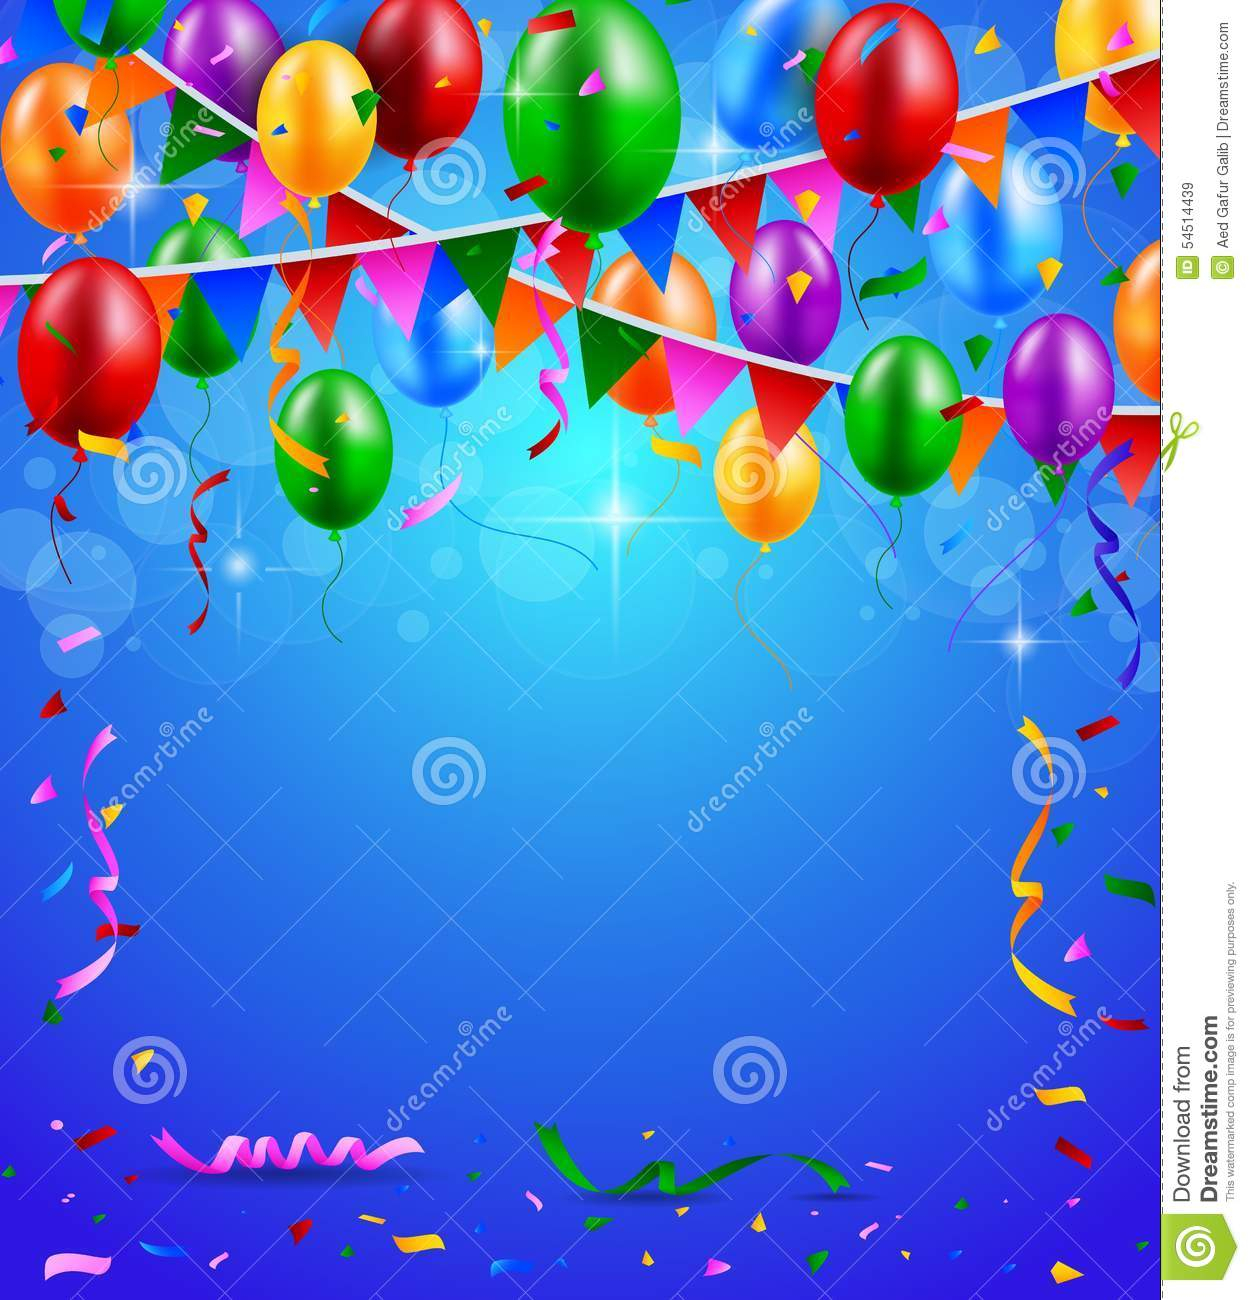 birthday party wallpaper background ; happy-birthday-party-balloons-ribbons-background-illustration-54514439